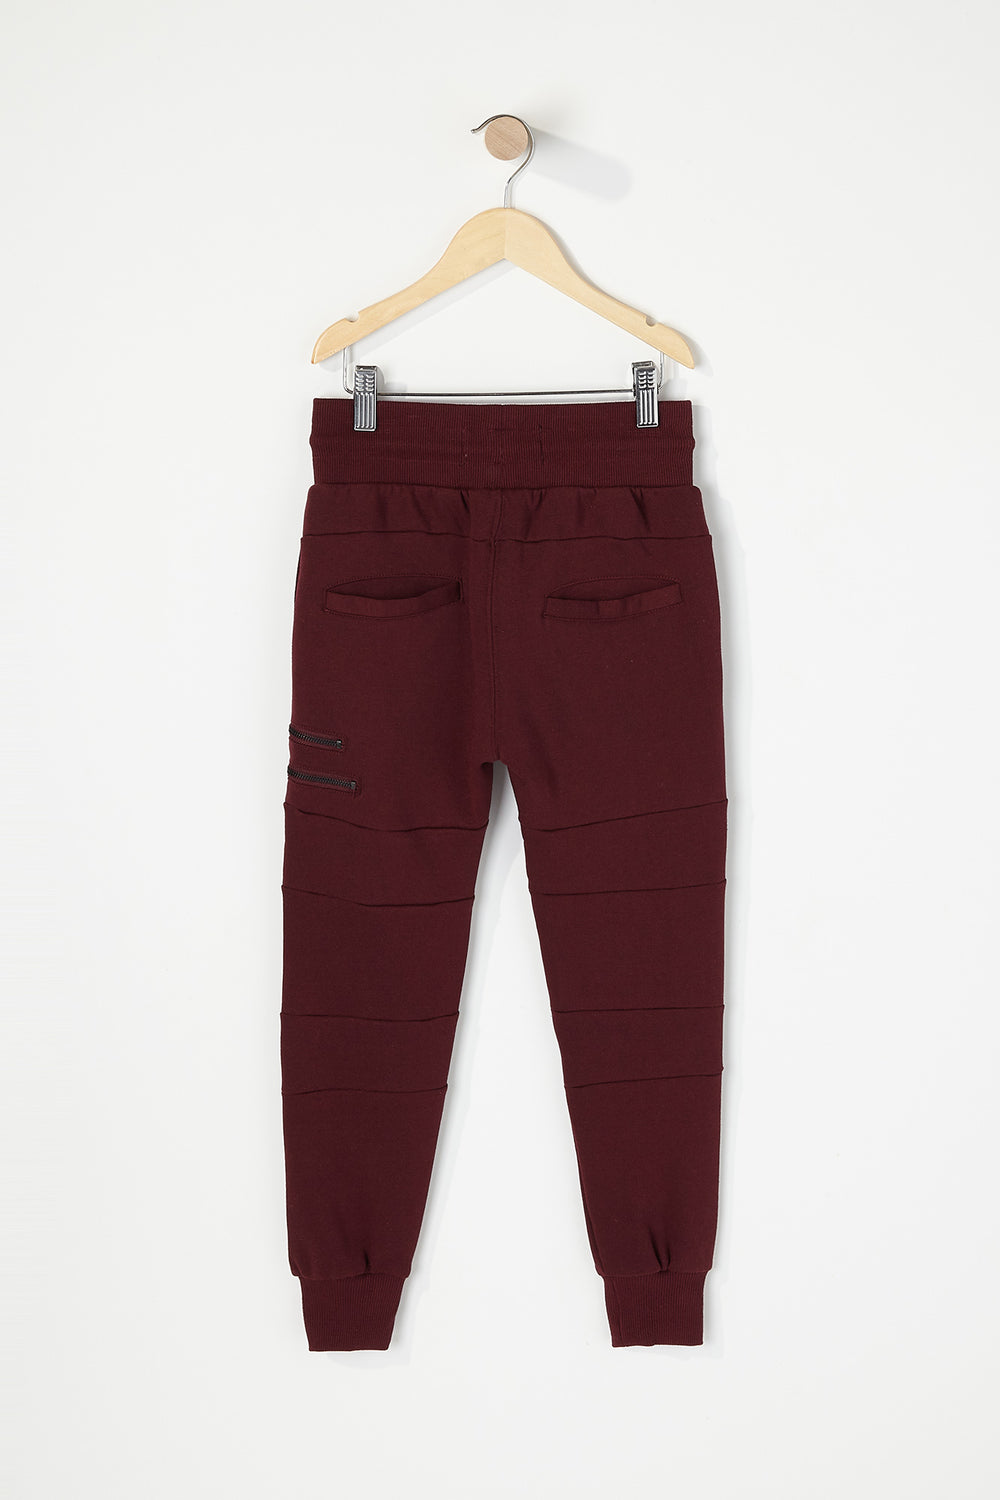 Boys Moto Zip Jogger Burgundy